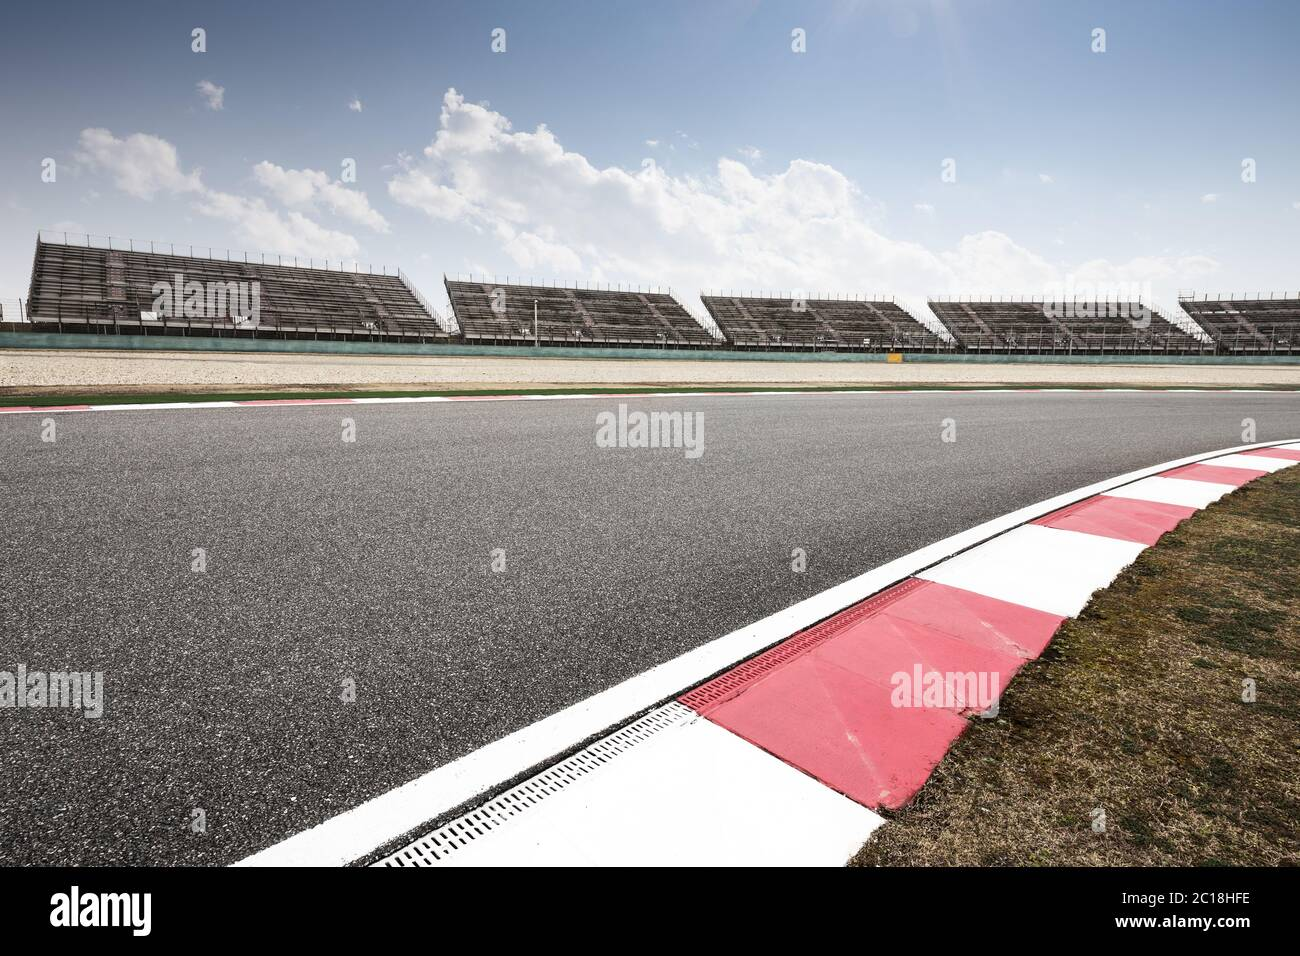 Empty Race Track Background High Resolution Stock Photography And Images Alamy